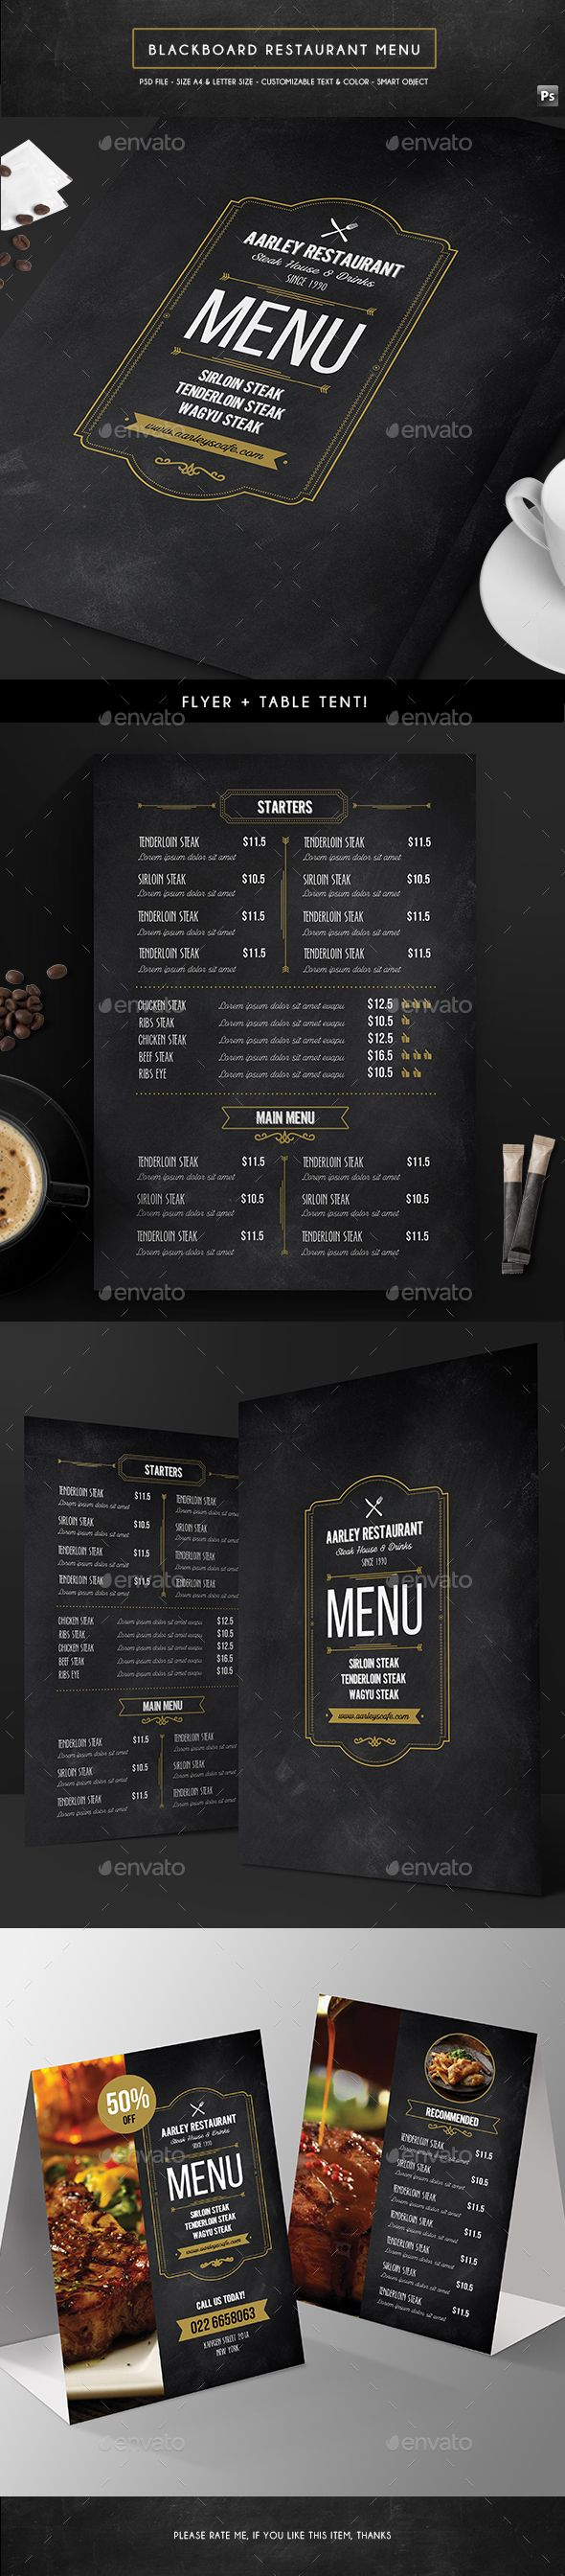 Blackboard Menu Flyer + Table Tent Template PSD. Download here: http://graphicriver.net/item/blackboard-menu-flyer-table-tent/16711712?ref=ksioks